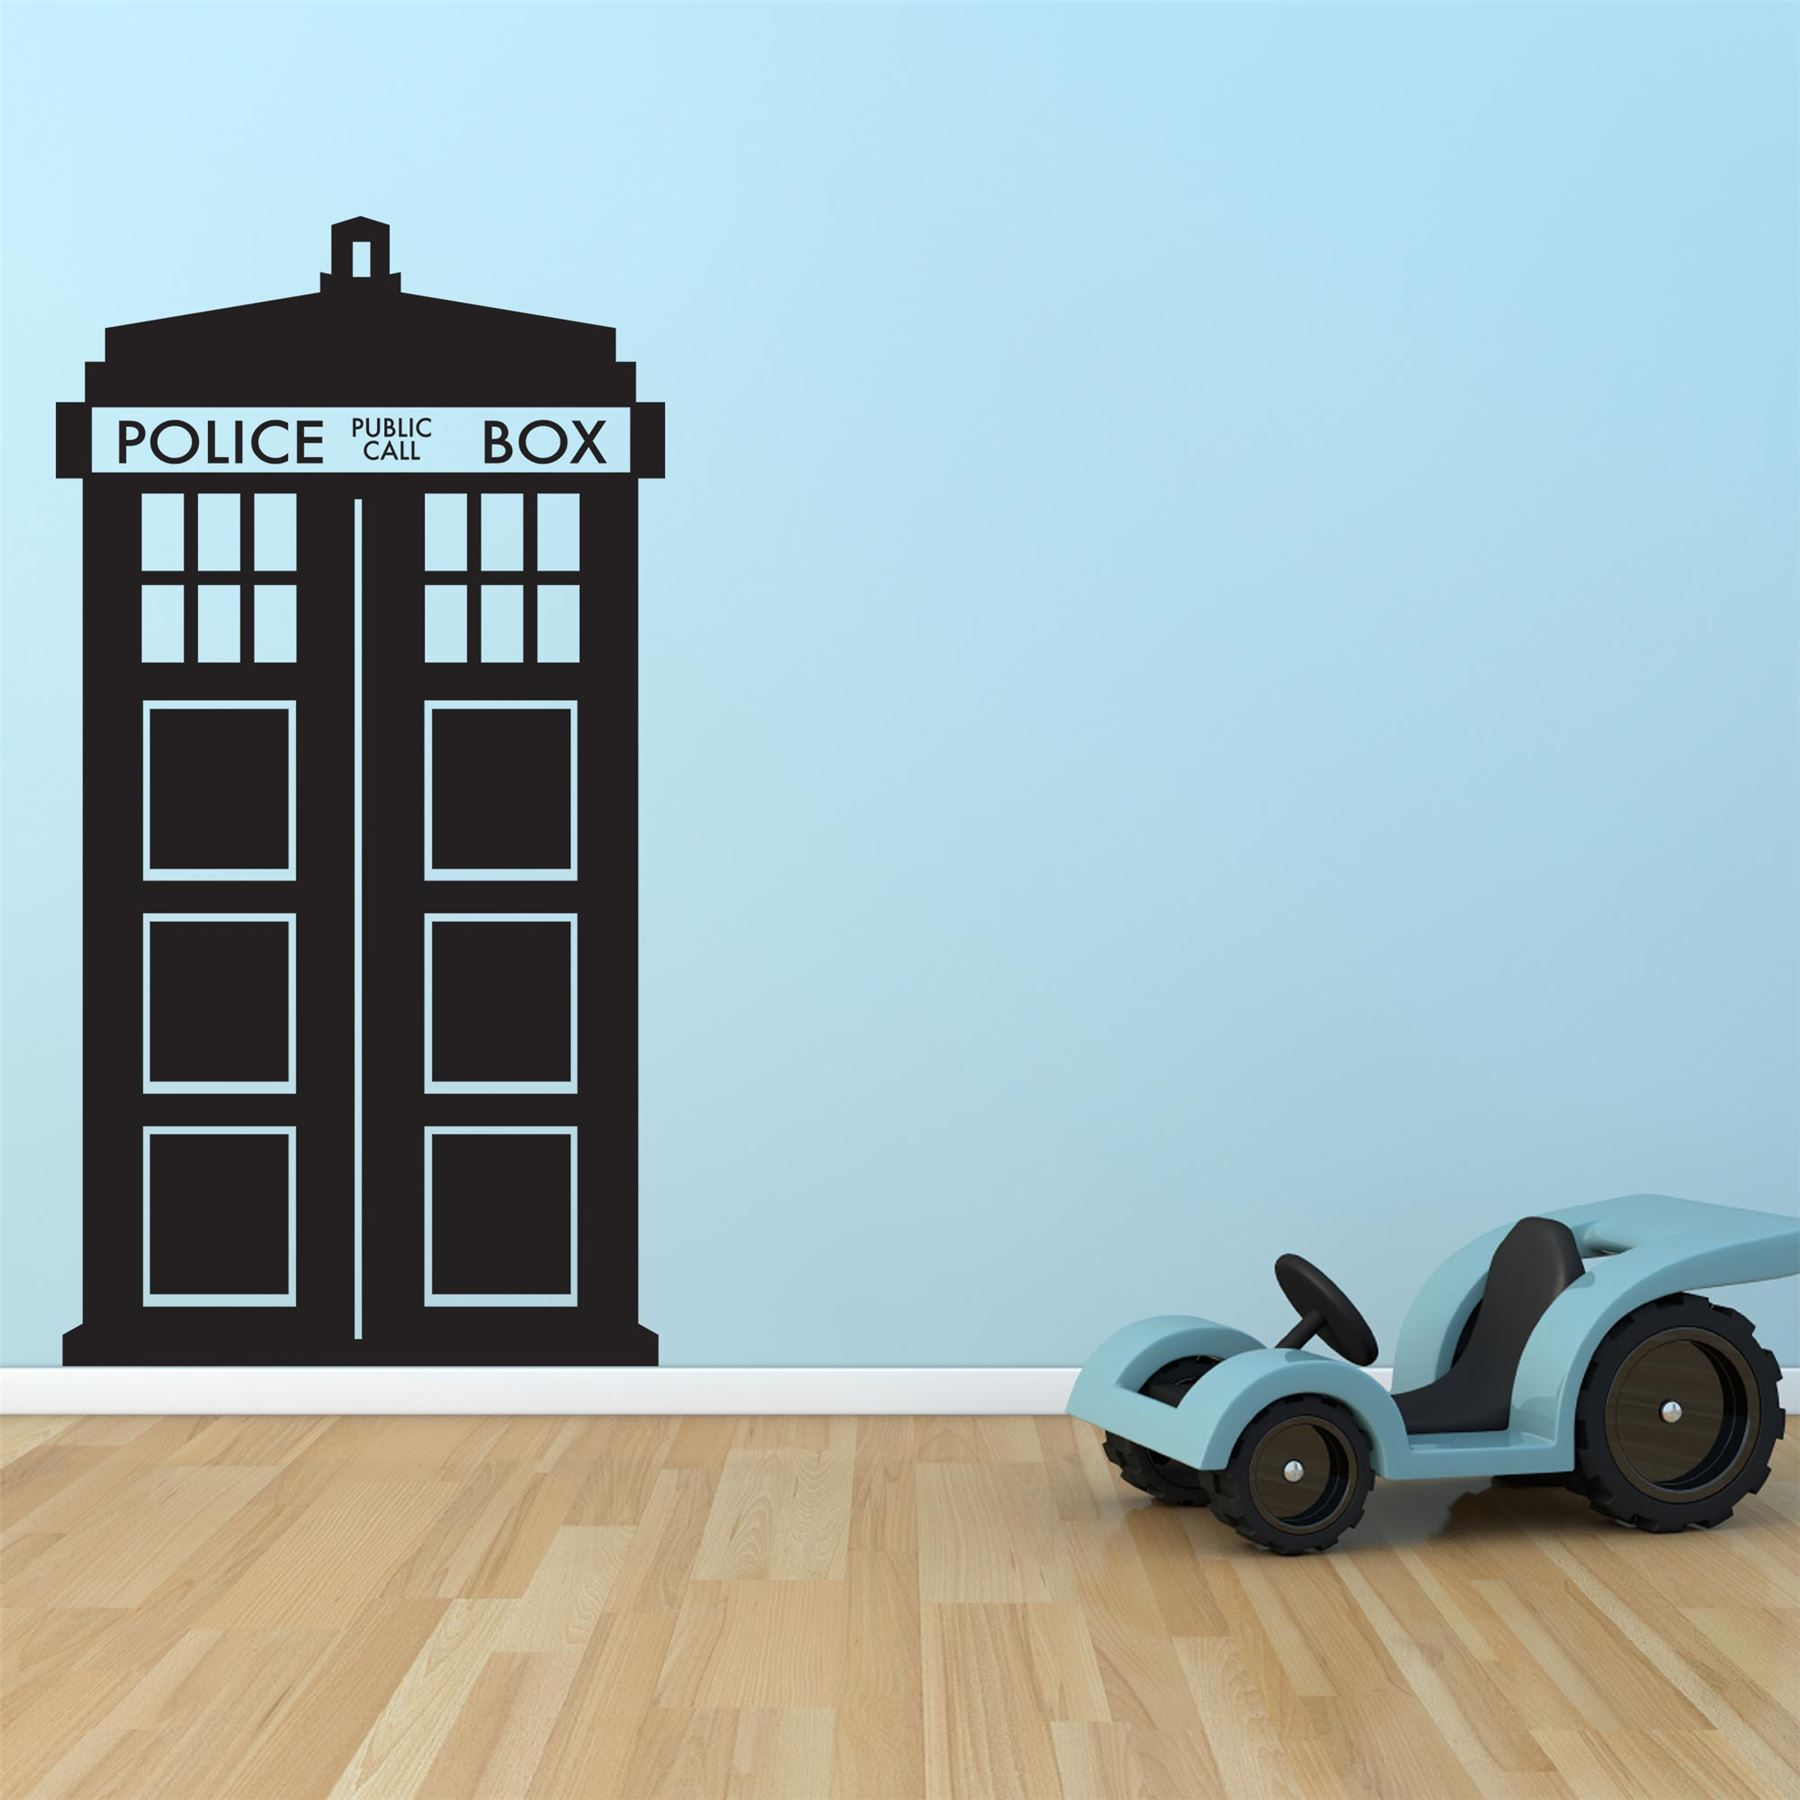 supertogether dr who tardis childrens bedroom vinyl wall sticker decal ebay. Black Bedroom Furniture Sets. Home Design Ideas